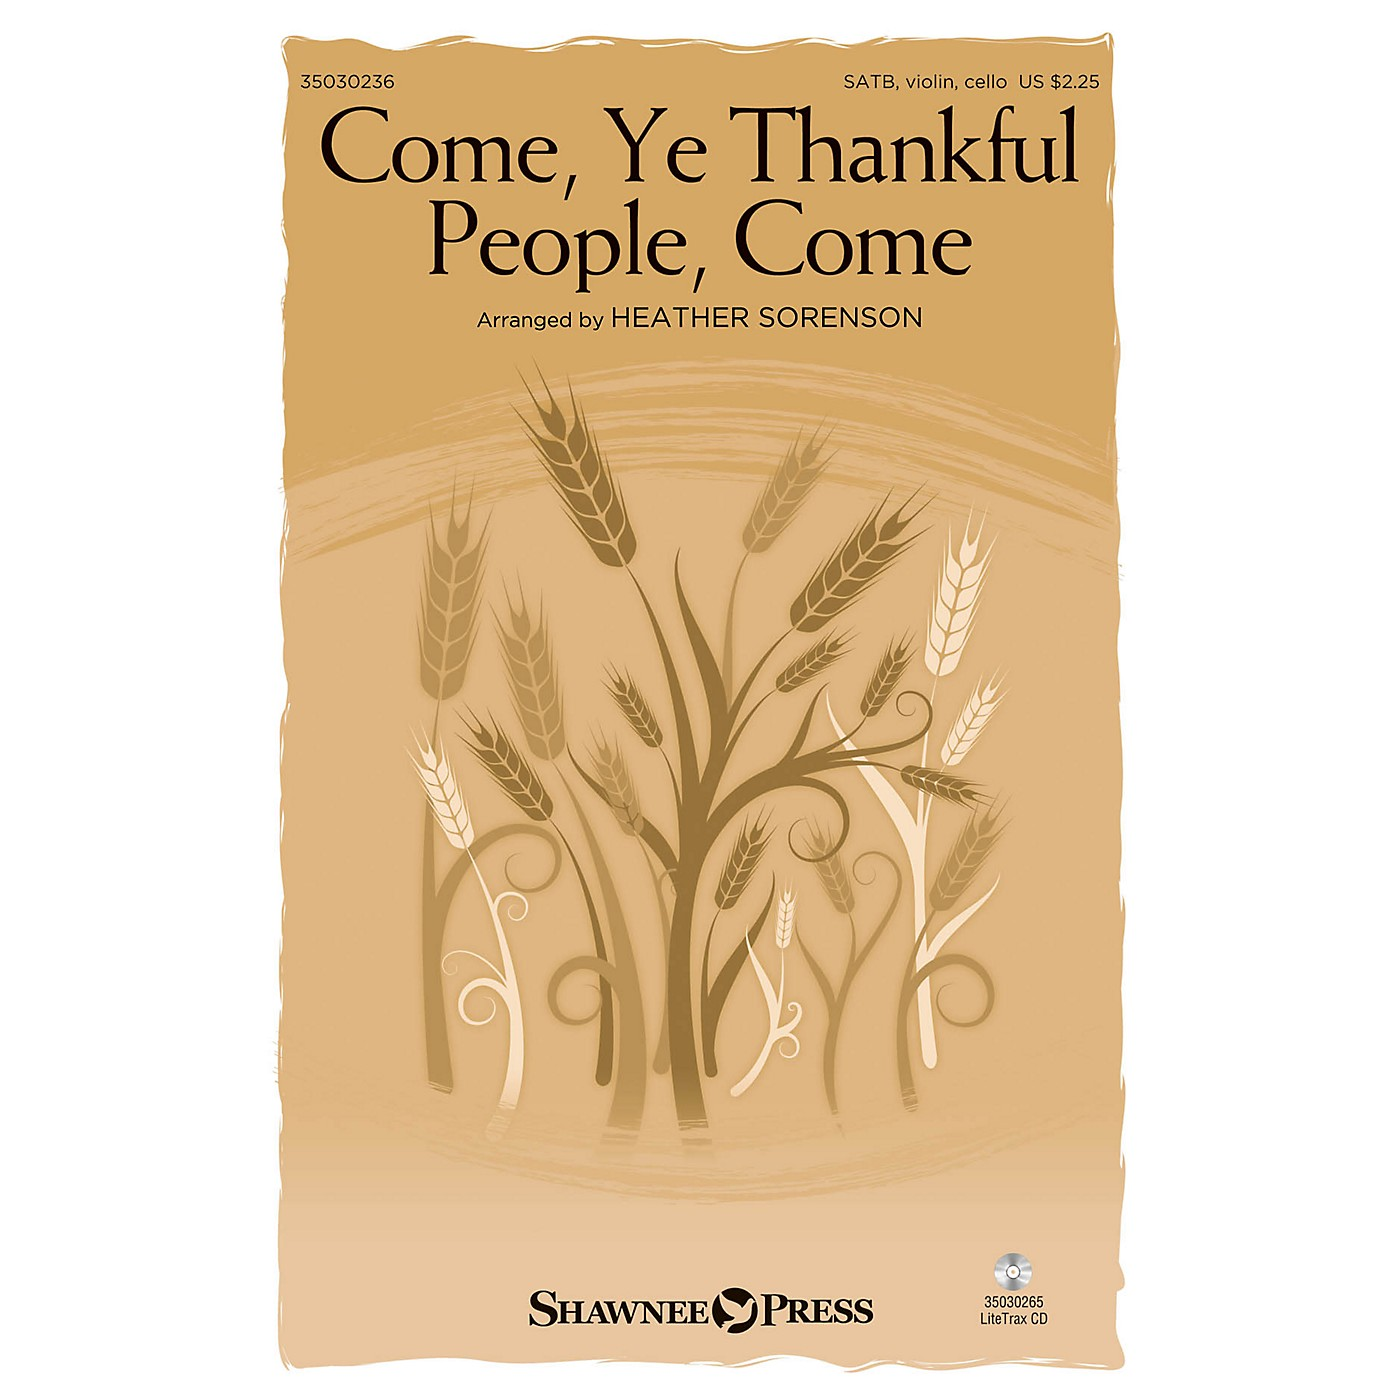 Shawnee Press Come, Ye Thankful People, Come SATB W/ VIOLIN AND CELLO arranged by Heather Sorenson thumbnail